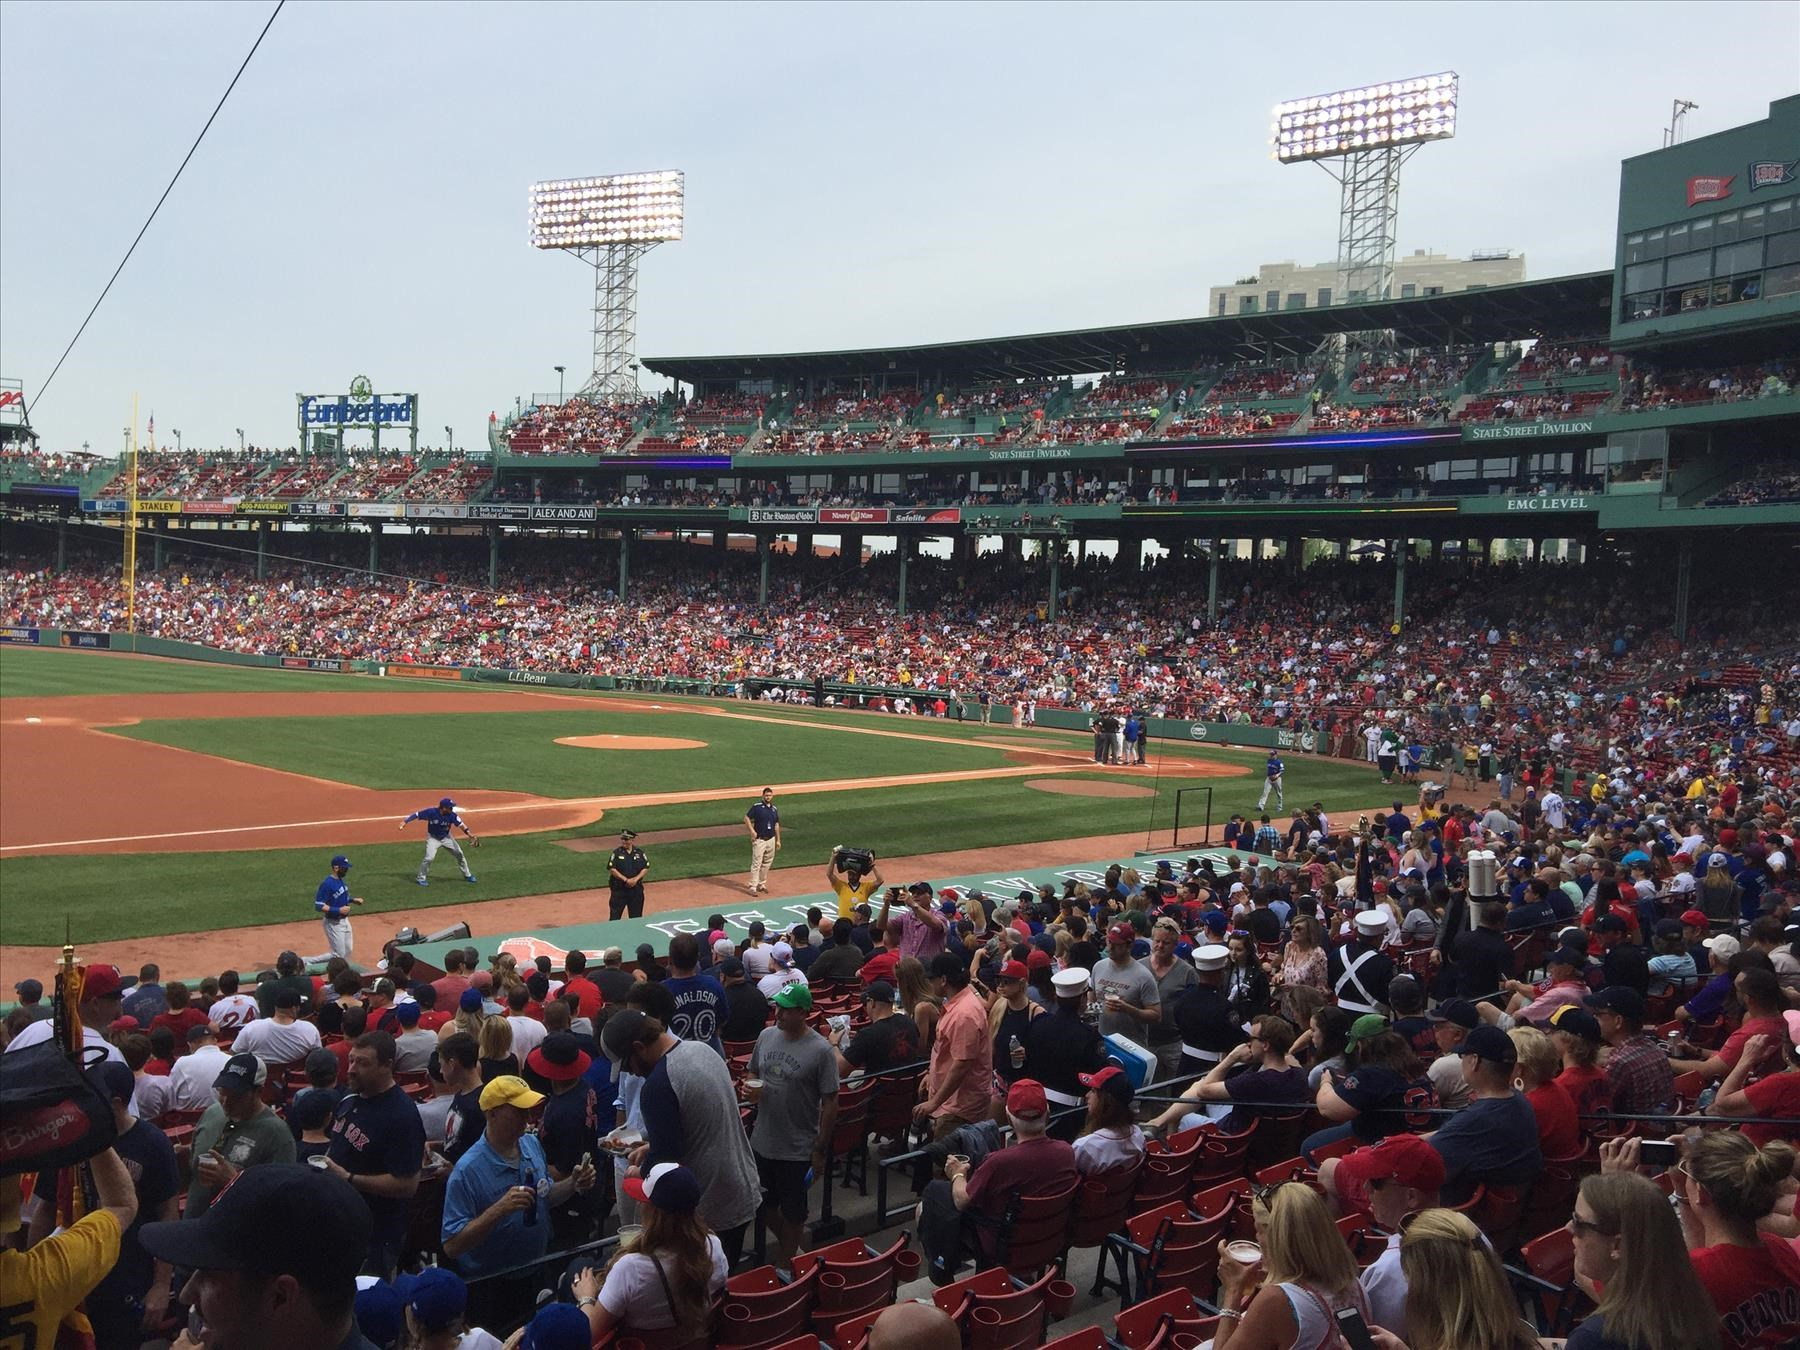 Blue Jays in Fenway Park vs Boston Red Sox